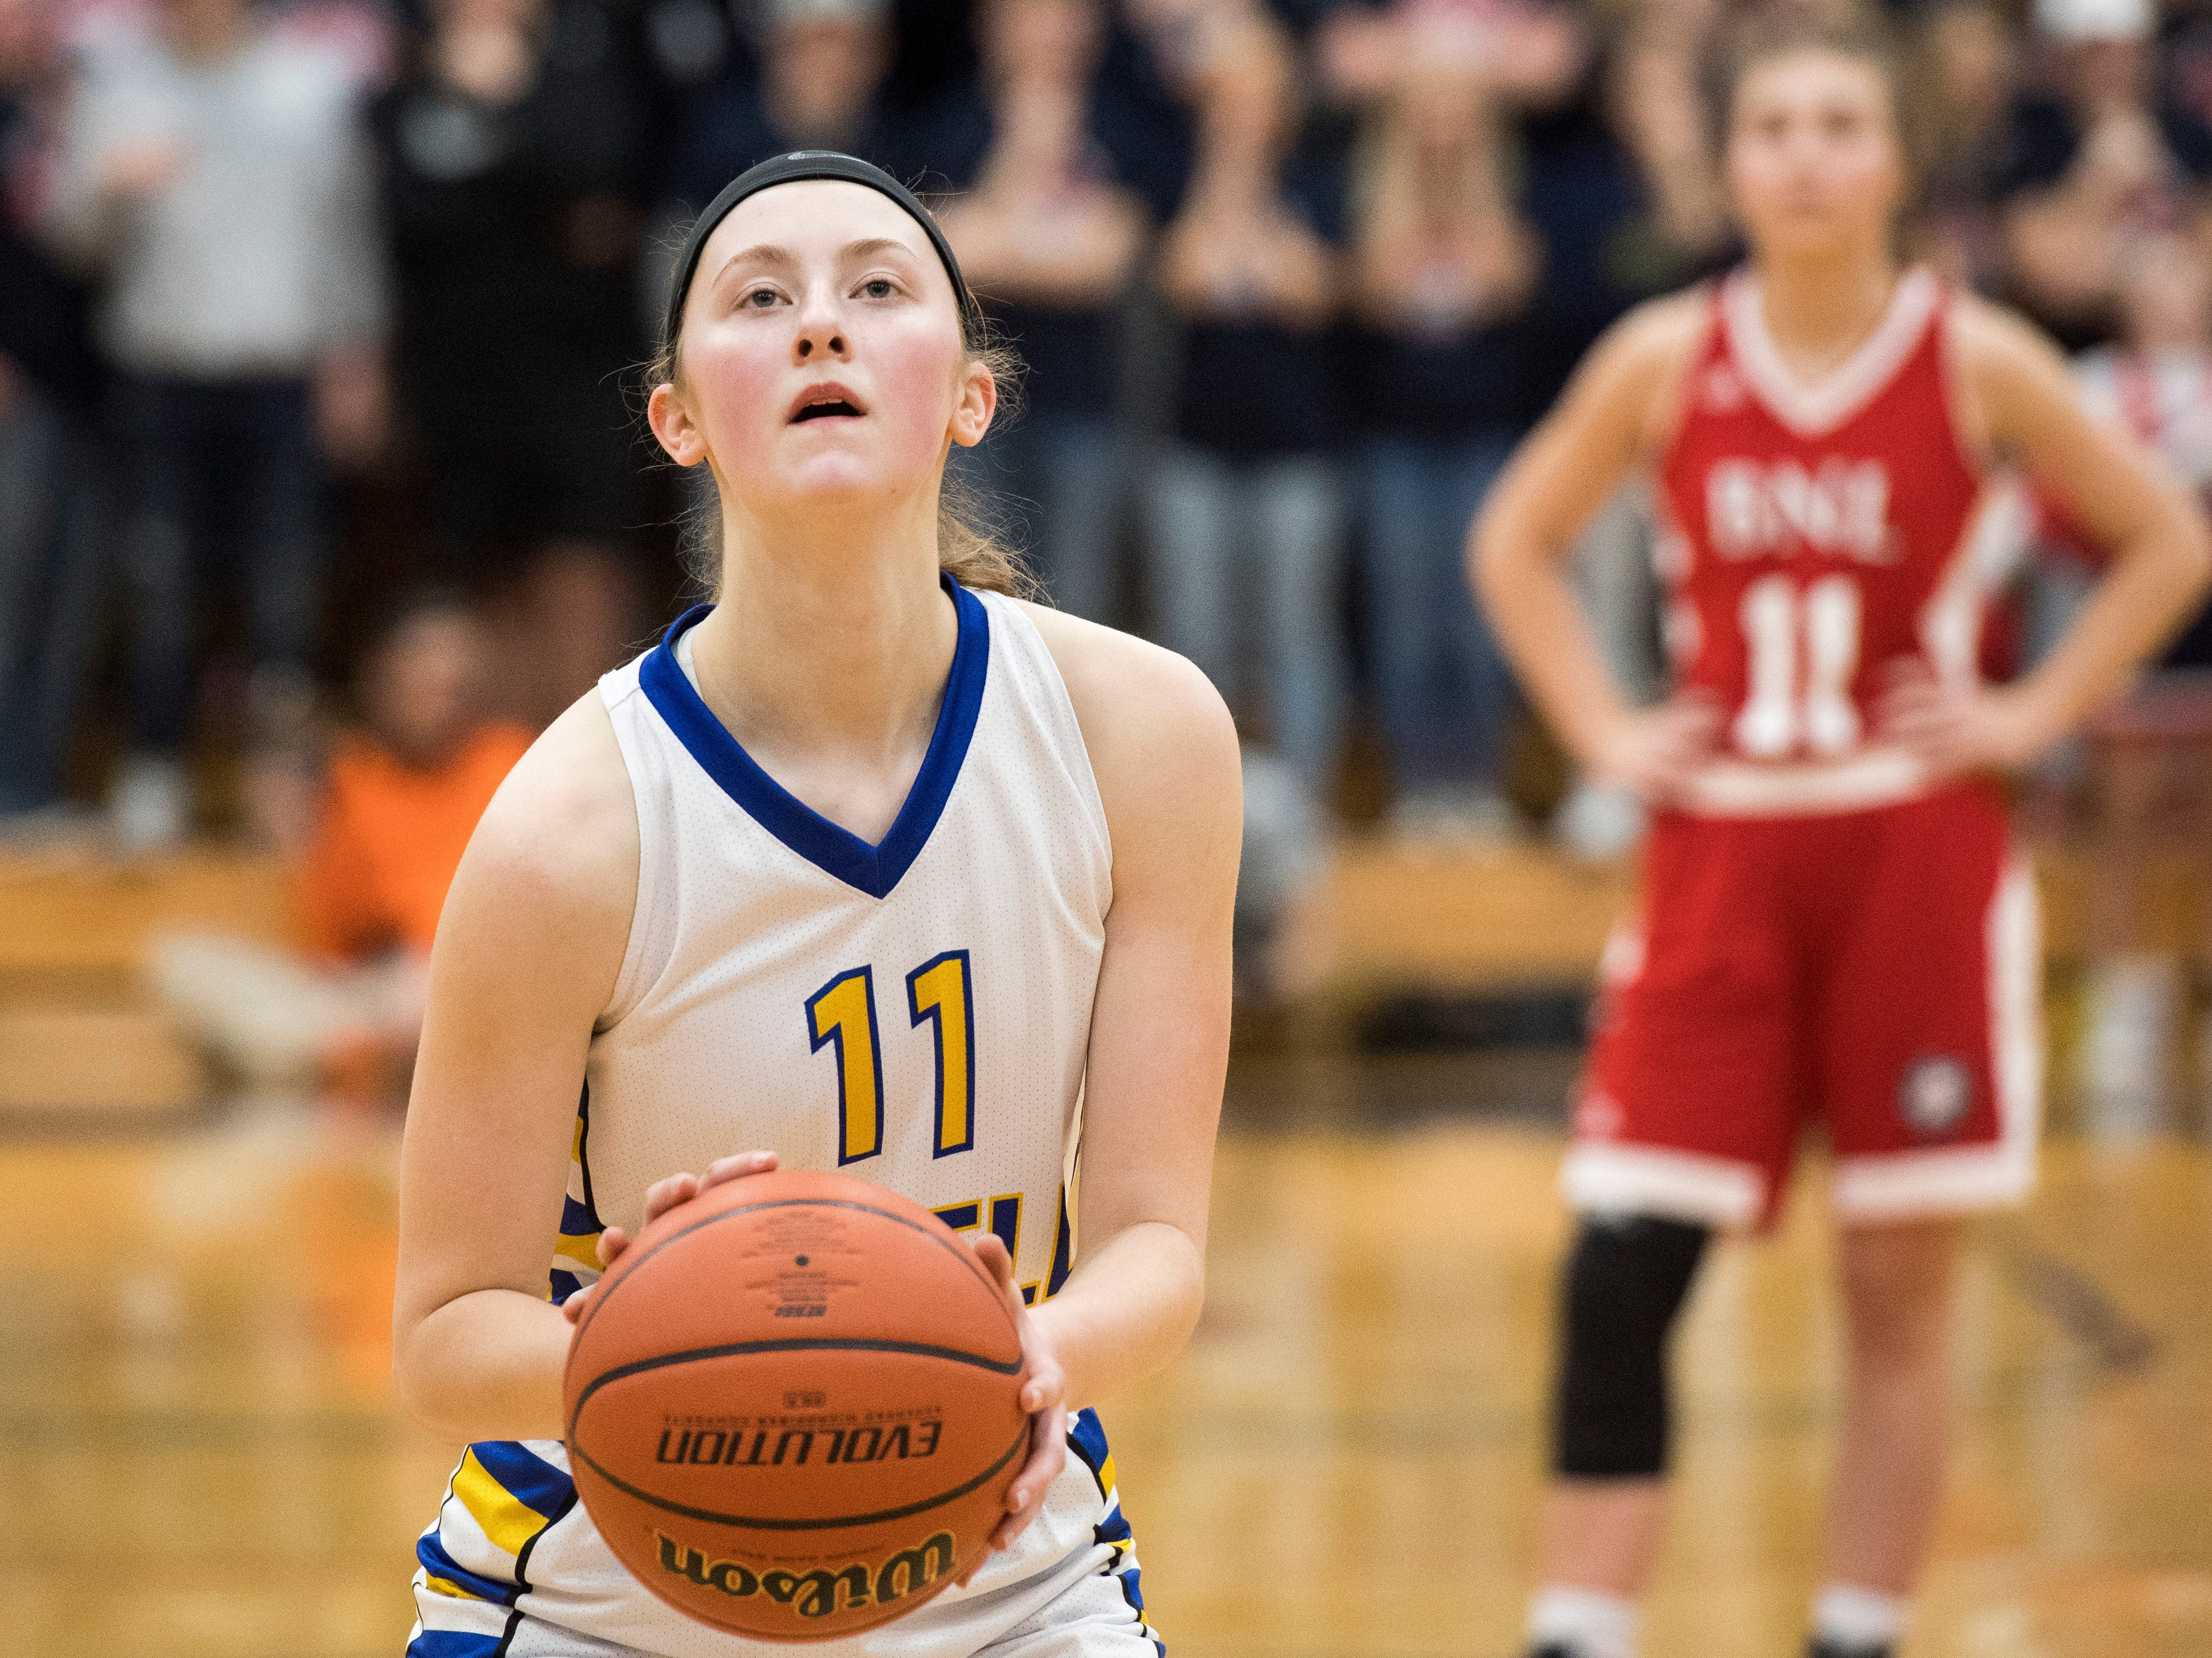 Castle's Carly Harpenau (11) takes a free throw shot during the IHSAA Girls Basketball Class 4A Regional Championship game against the Bedford North Lawrence Lady Stars at the Stars Field House in Bedford, Ind. Saturday, Feb. 9, 2019.